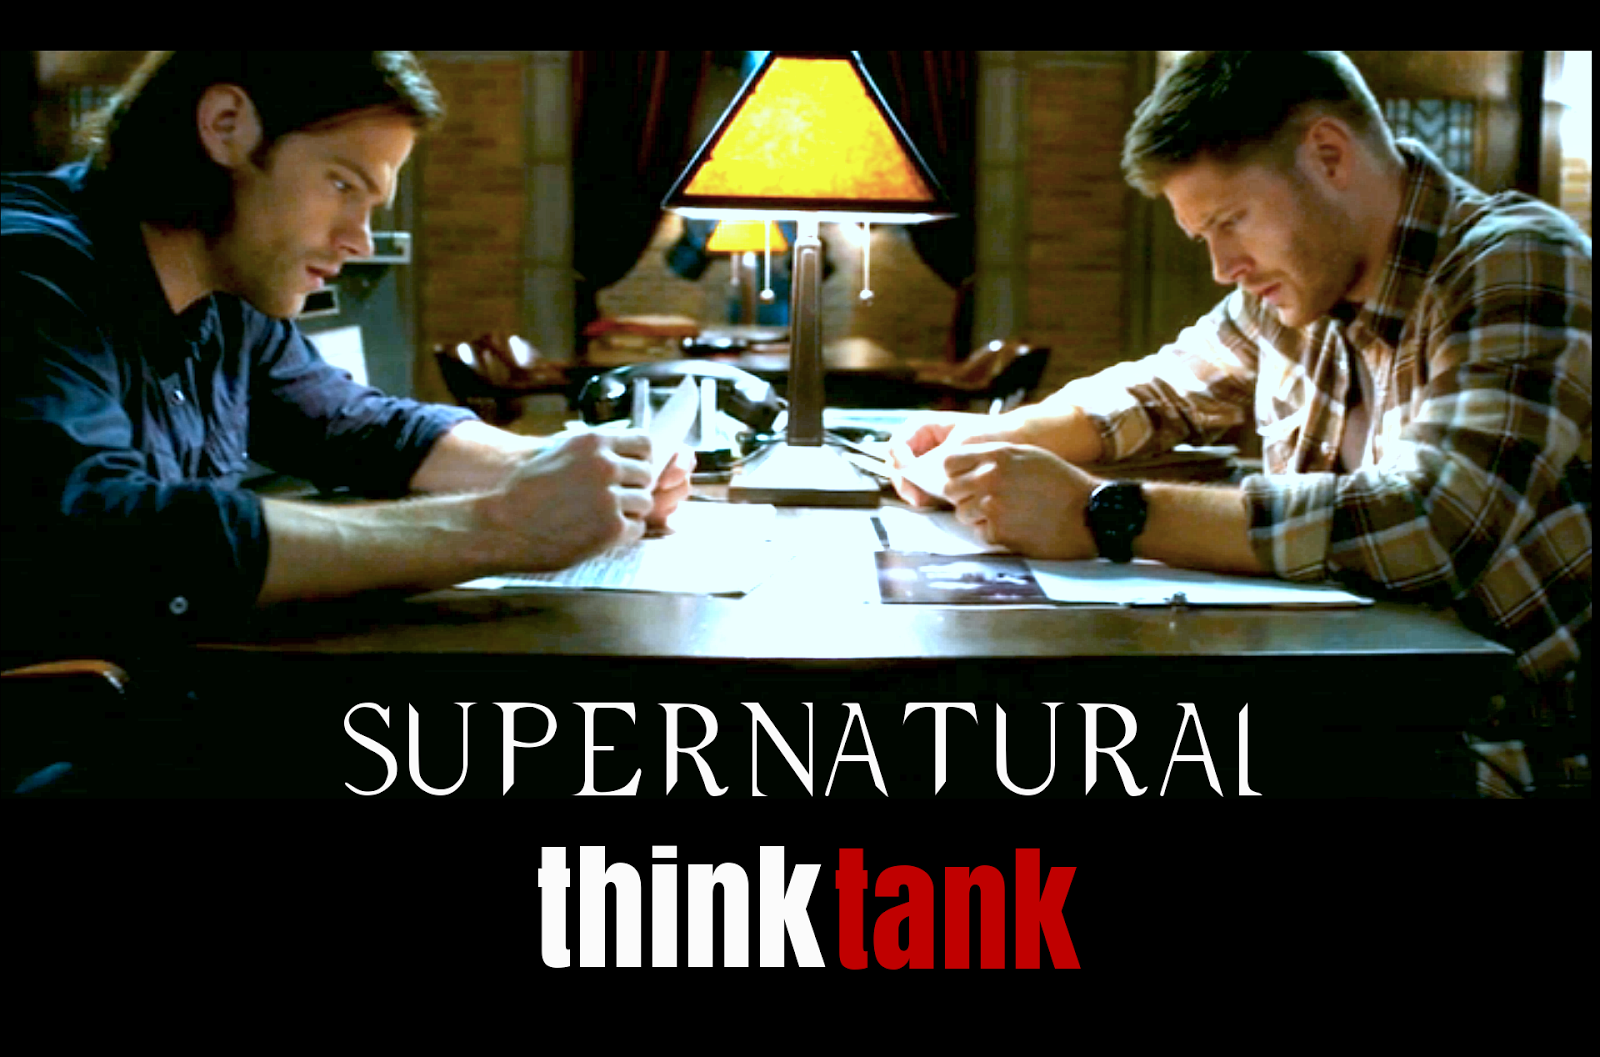 sweetondean: SUPERNATURAL THINK TANK - Theories and Thinky